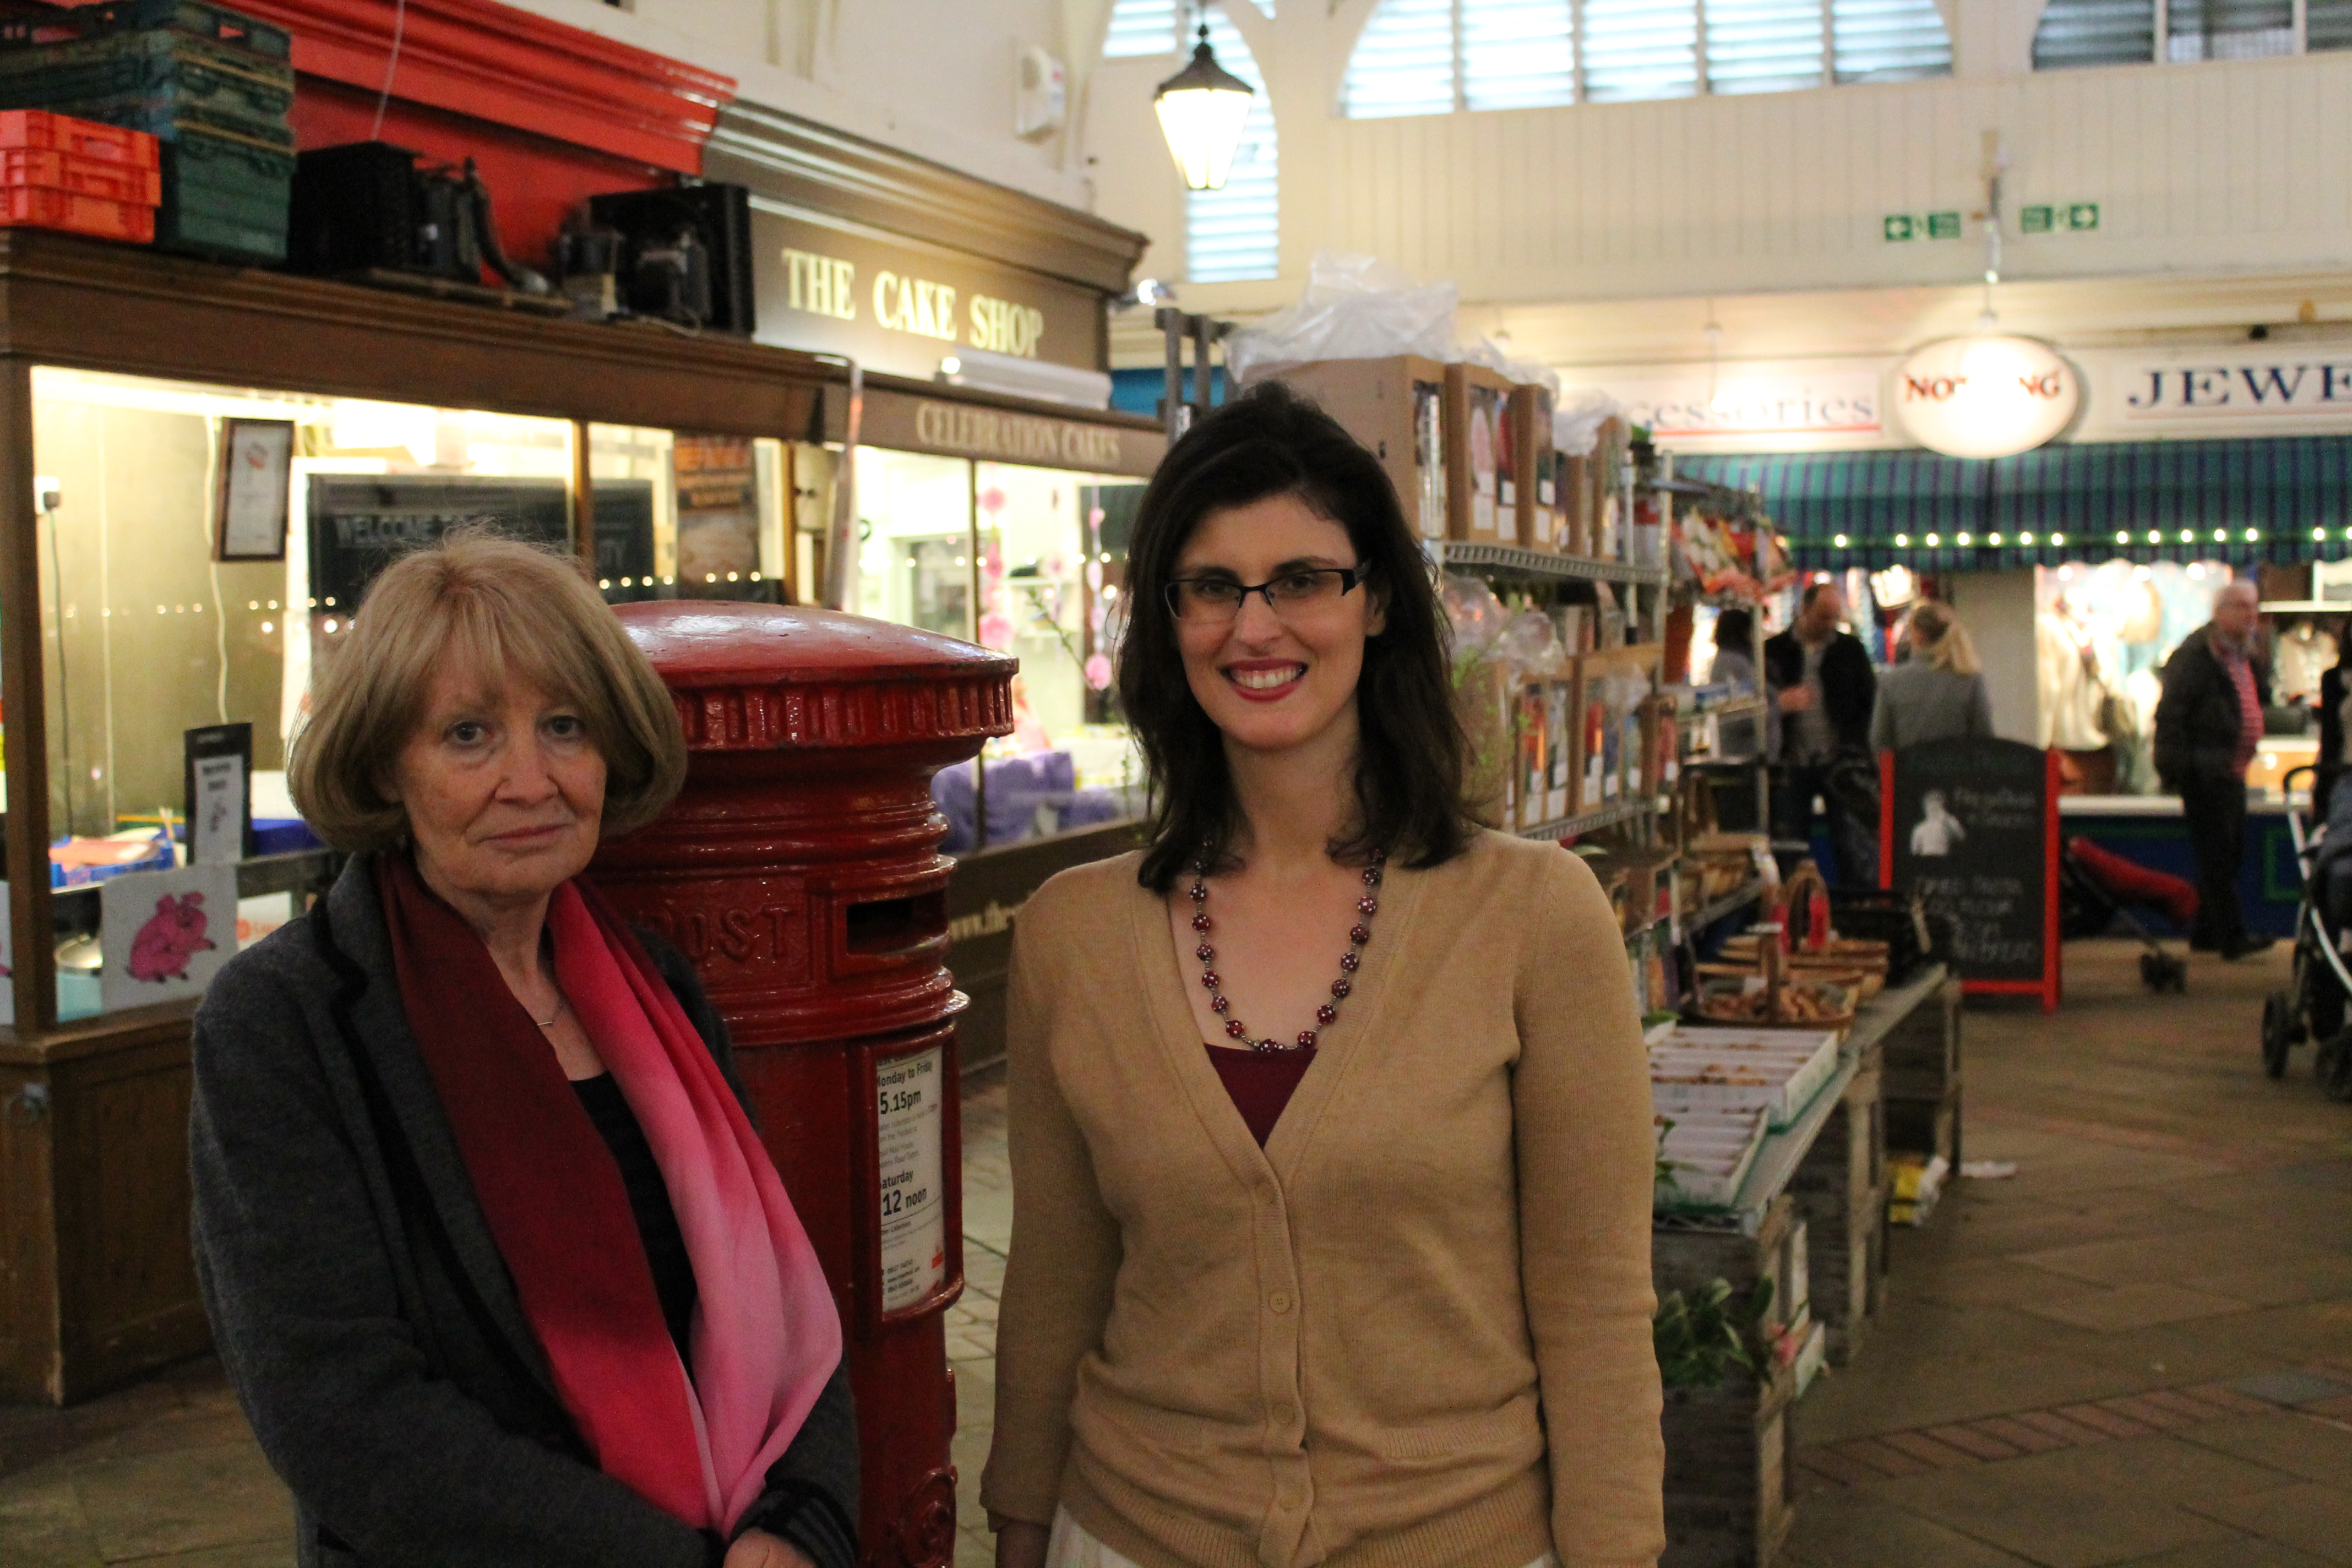 Layla Moran and Cllr Liz Wade in the Covered Market